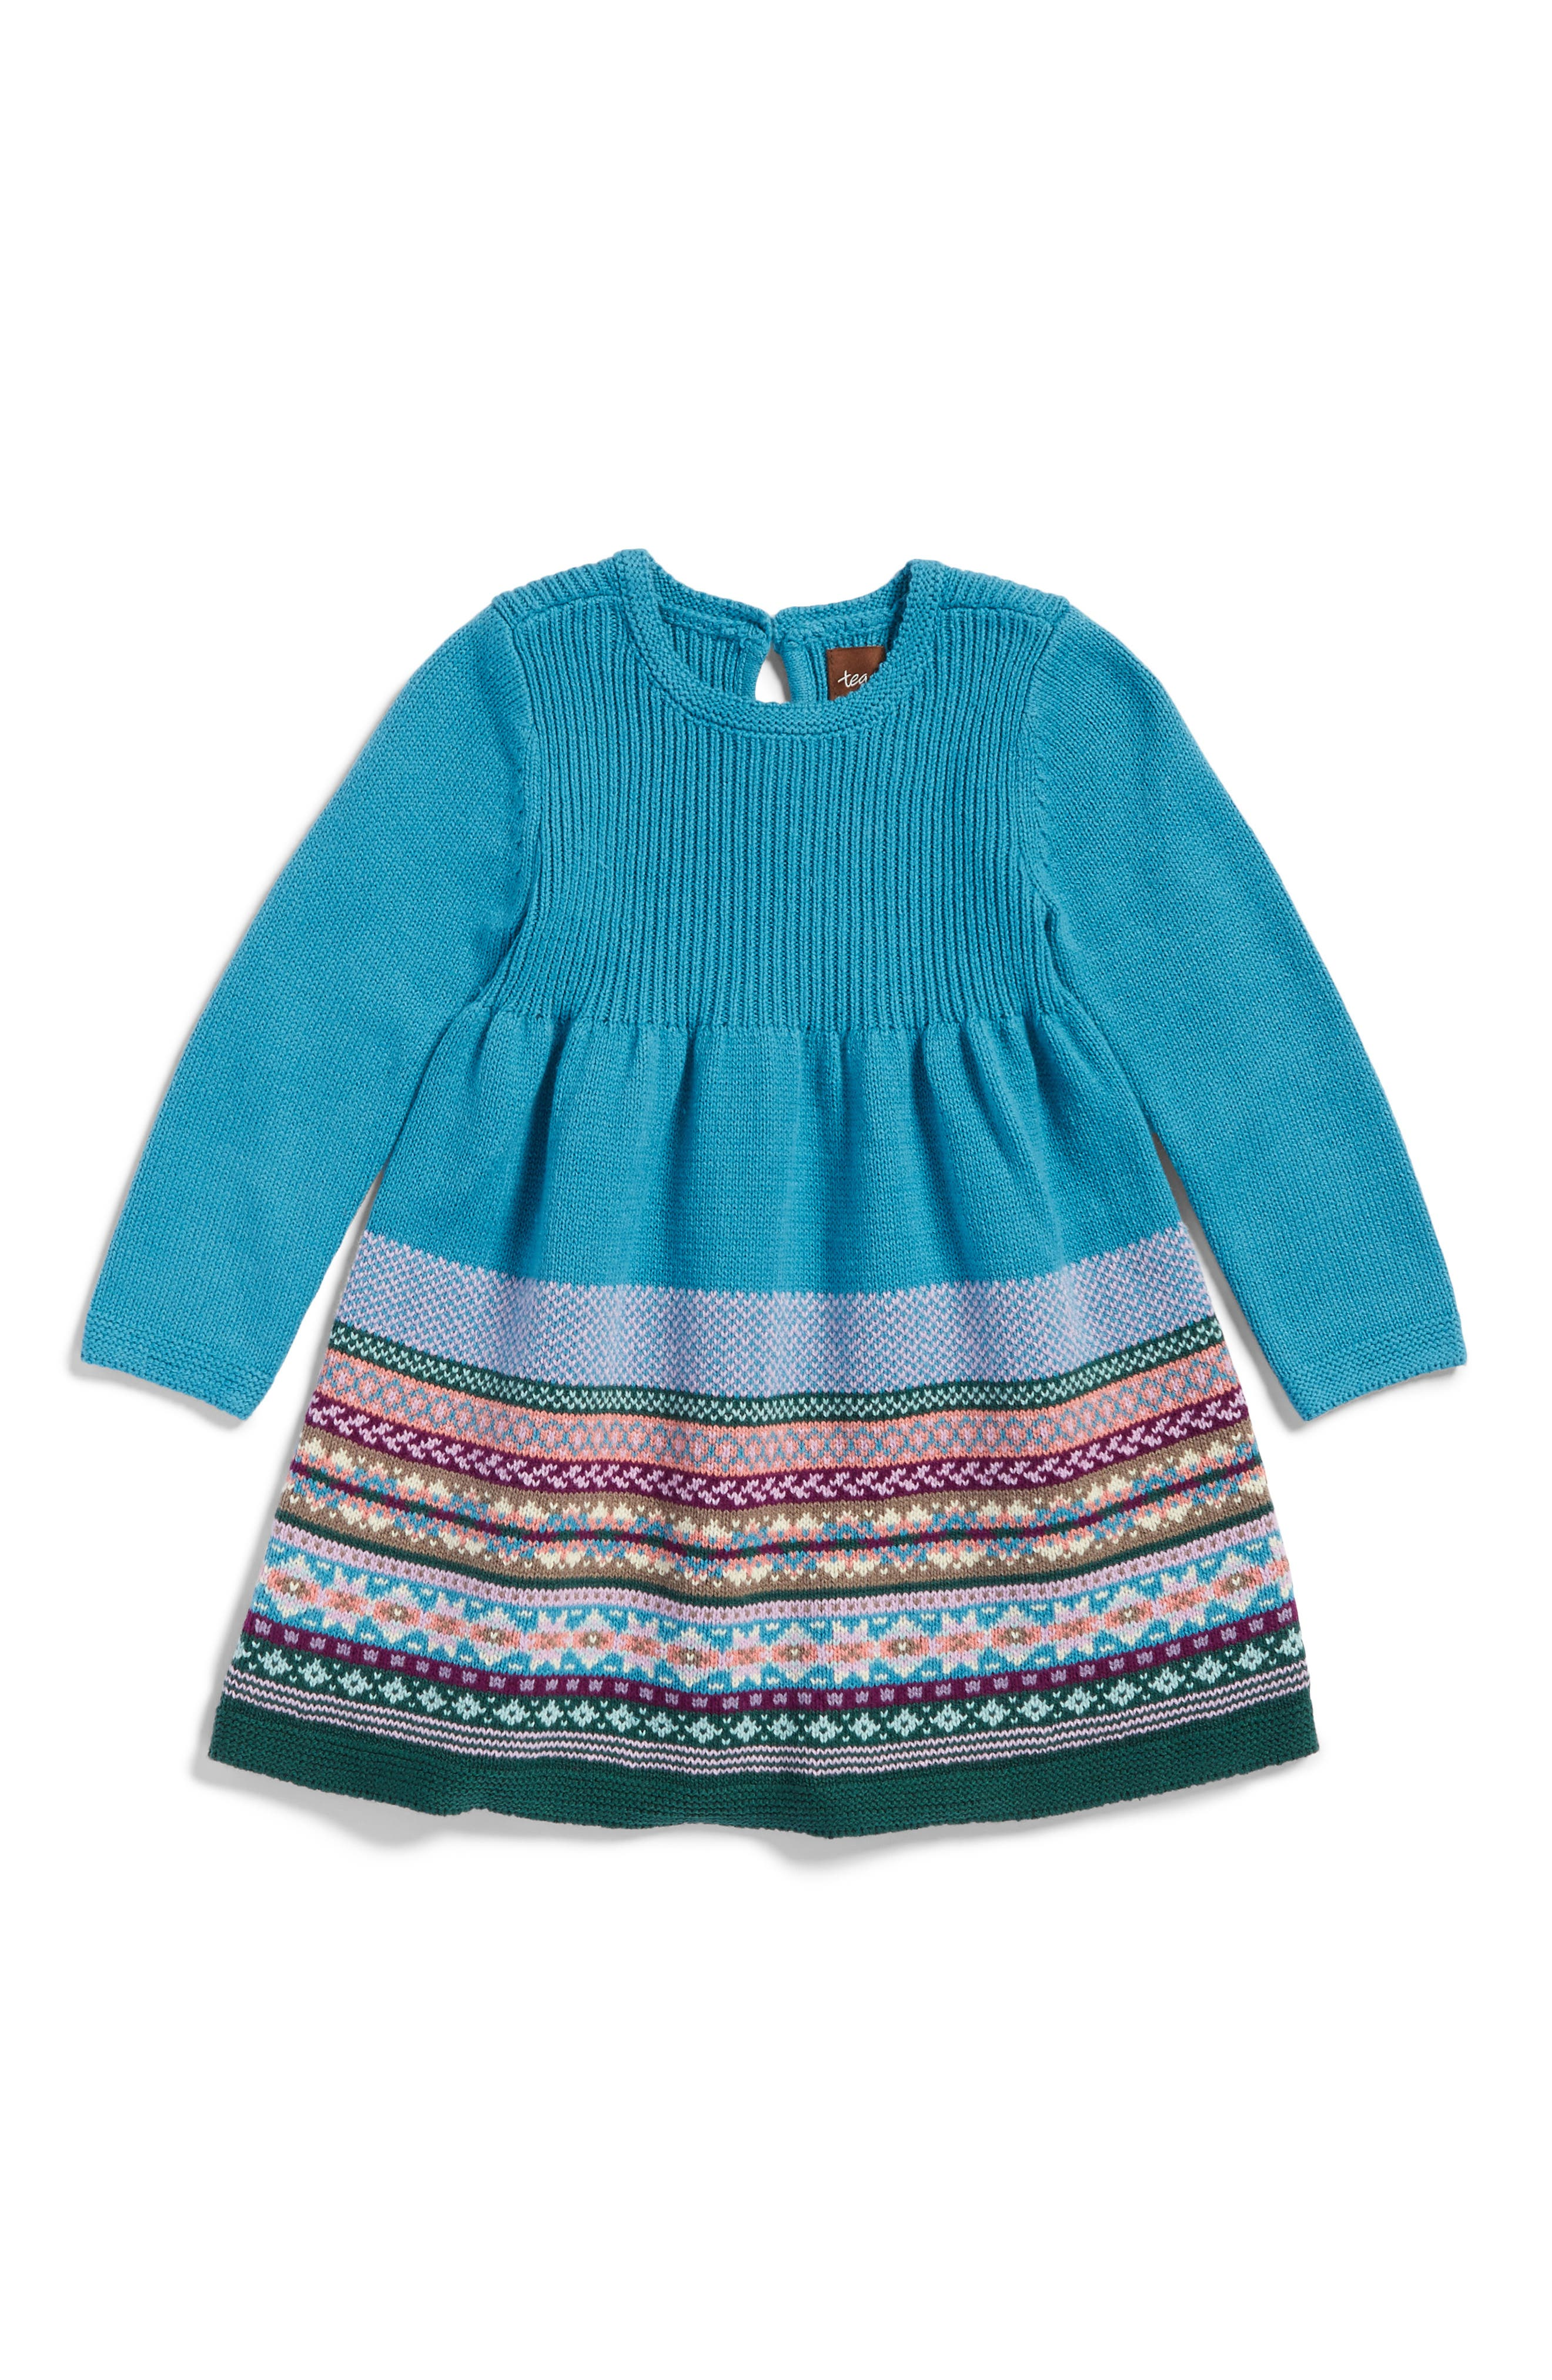 Main Image - Tea Collection Suzette Sweater Dress (Baby Girls)